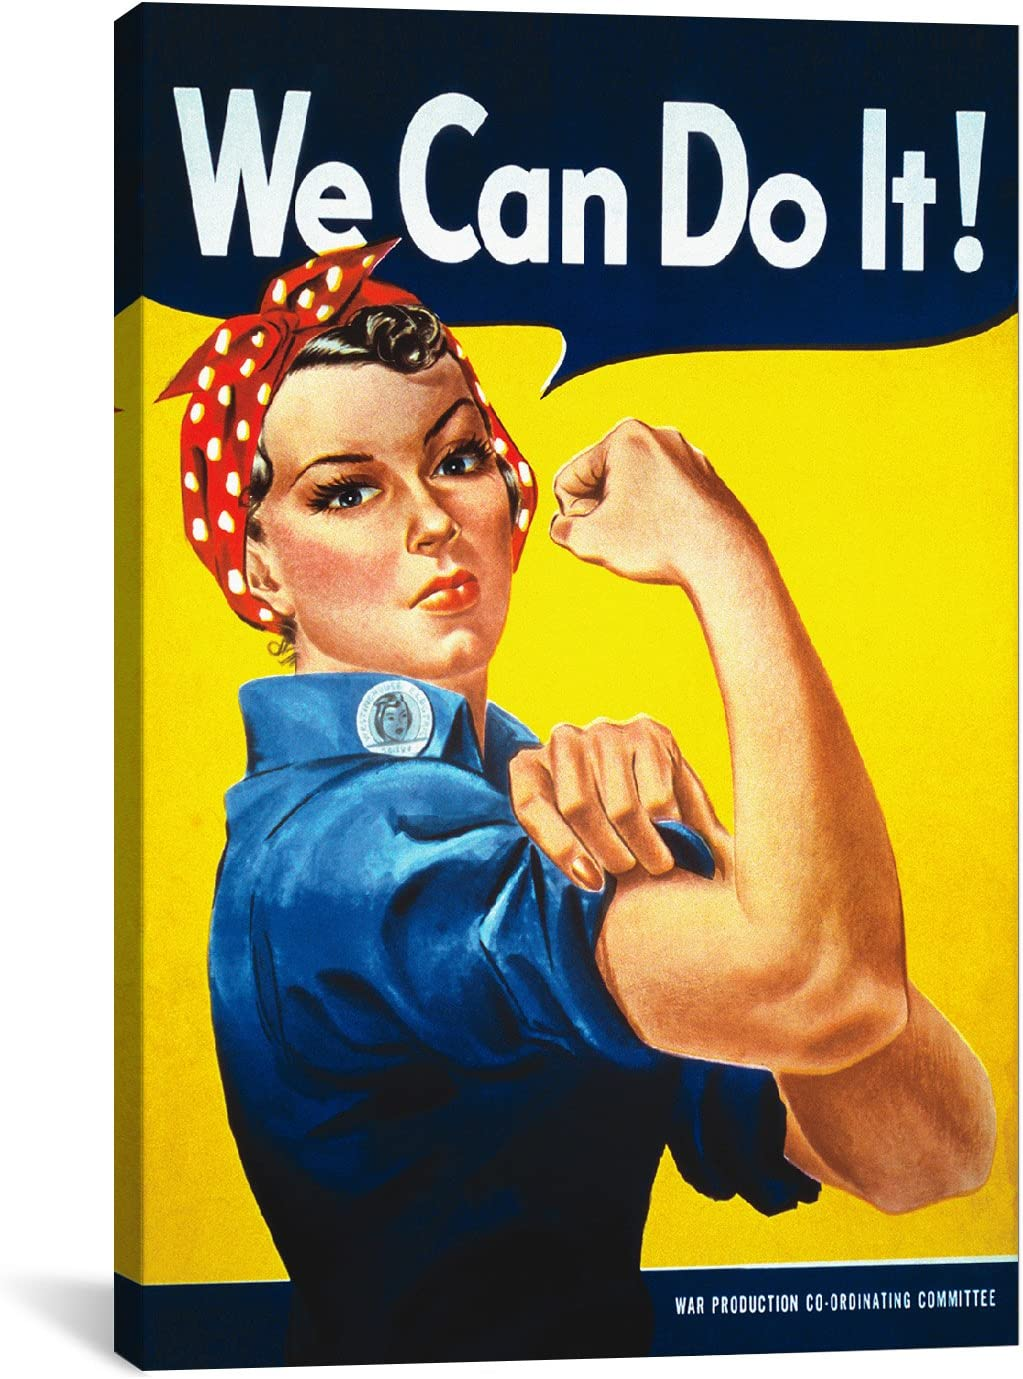 Icanvasart We Can Do It Rosie The Riveter Poster Canvas Art Print By J Howard Miller 18 By 12 Inch Posters Prints